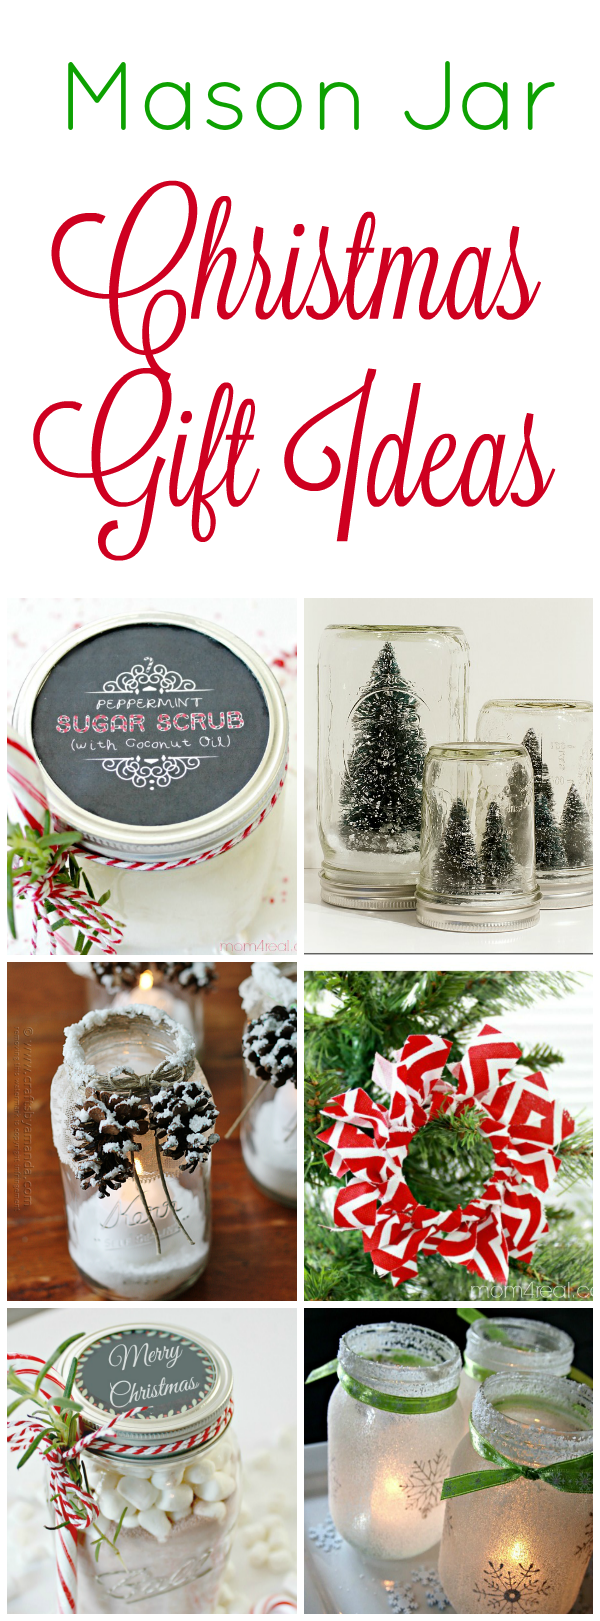 http://www.mom4real.com/wp-content/uploads/2015/11/Mason-Jar-Gift-Ideas-Christmas.png